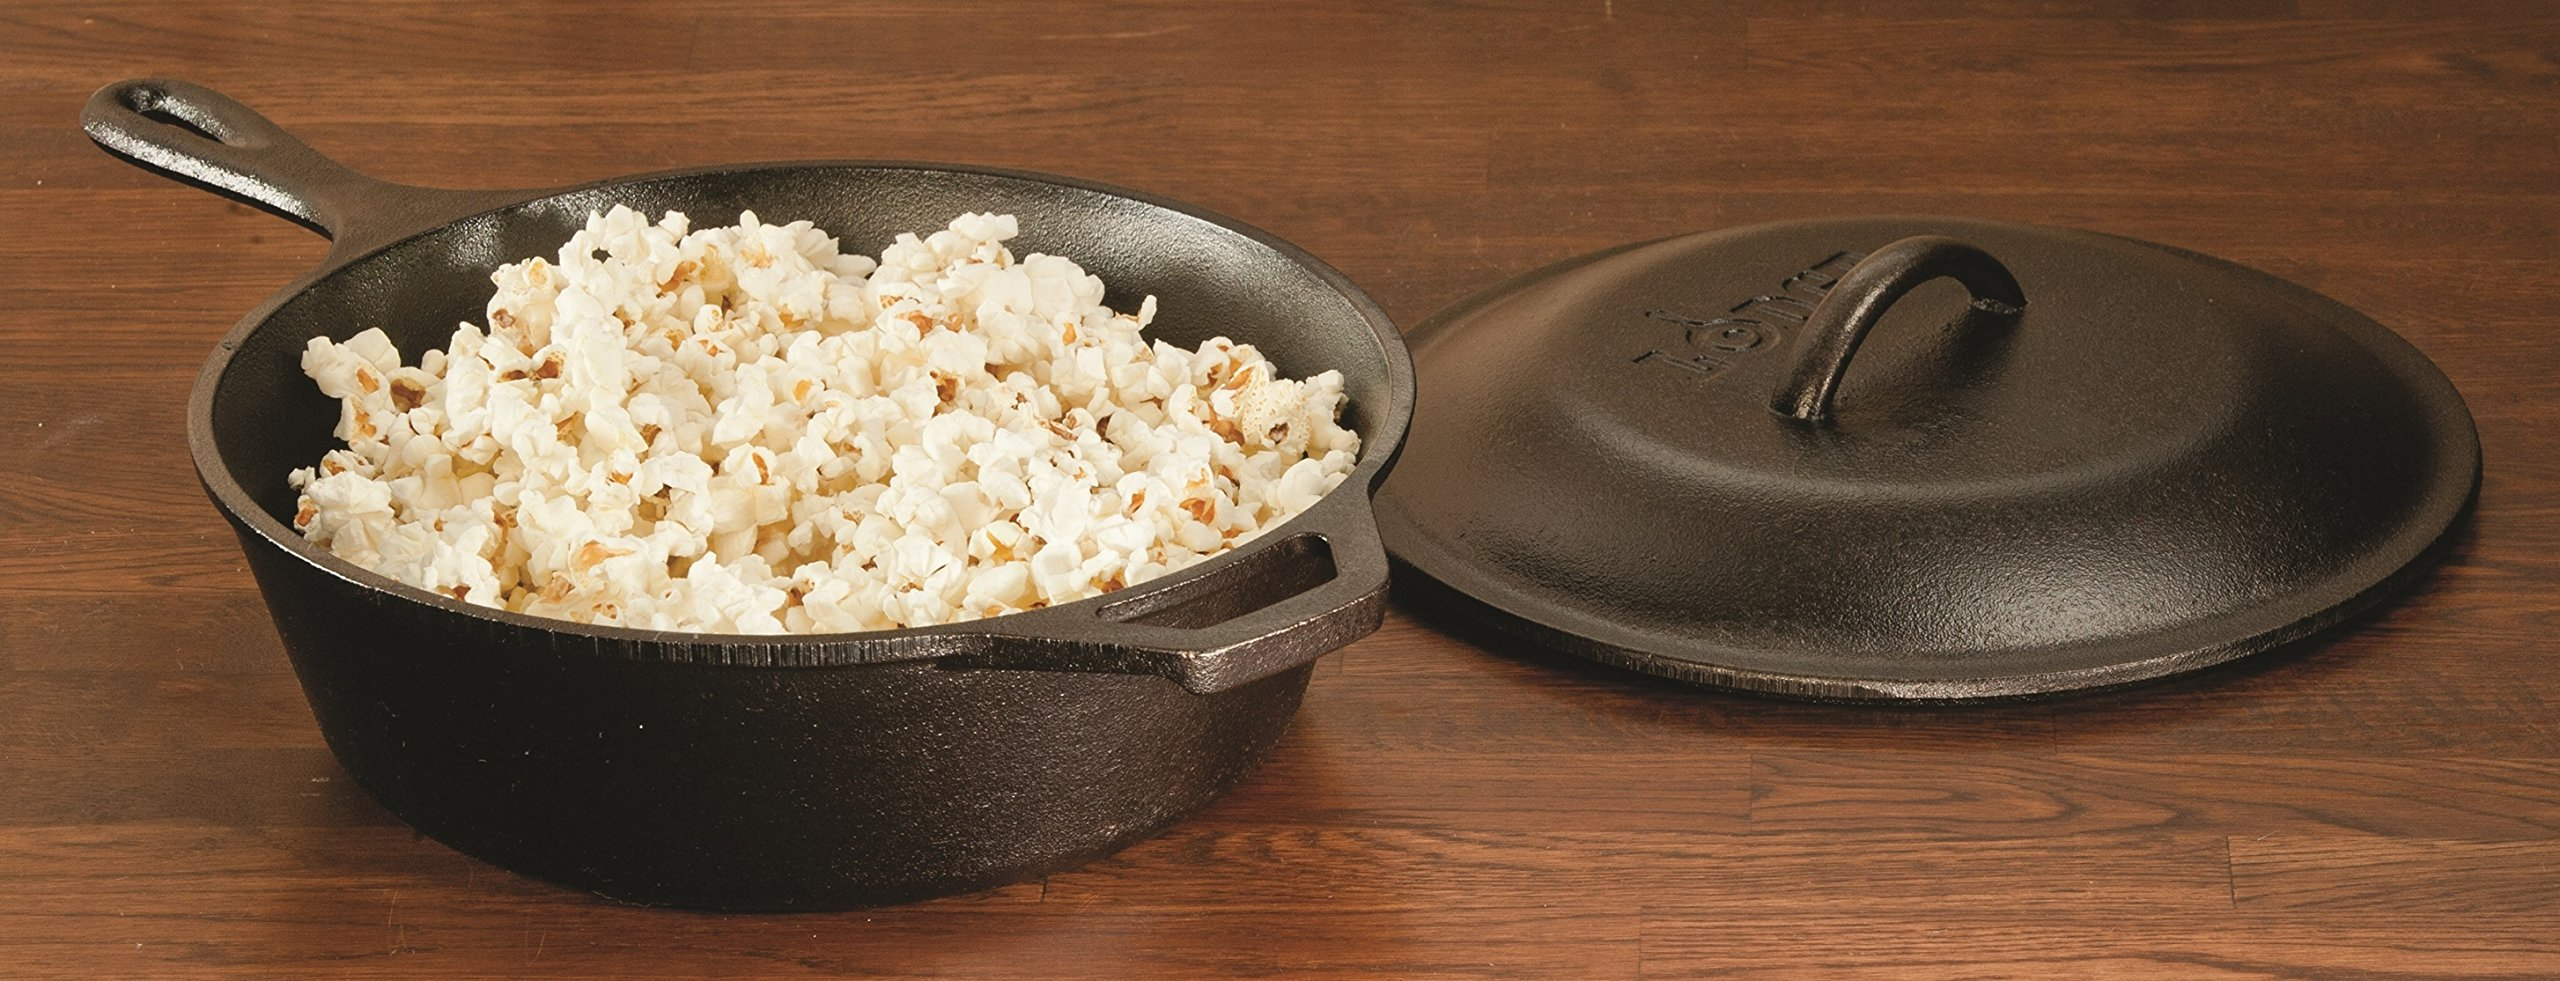 Lodge L5IC3 8-Inch Cast Iron Lid by Lodge (Image #5)